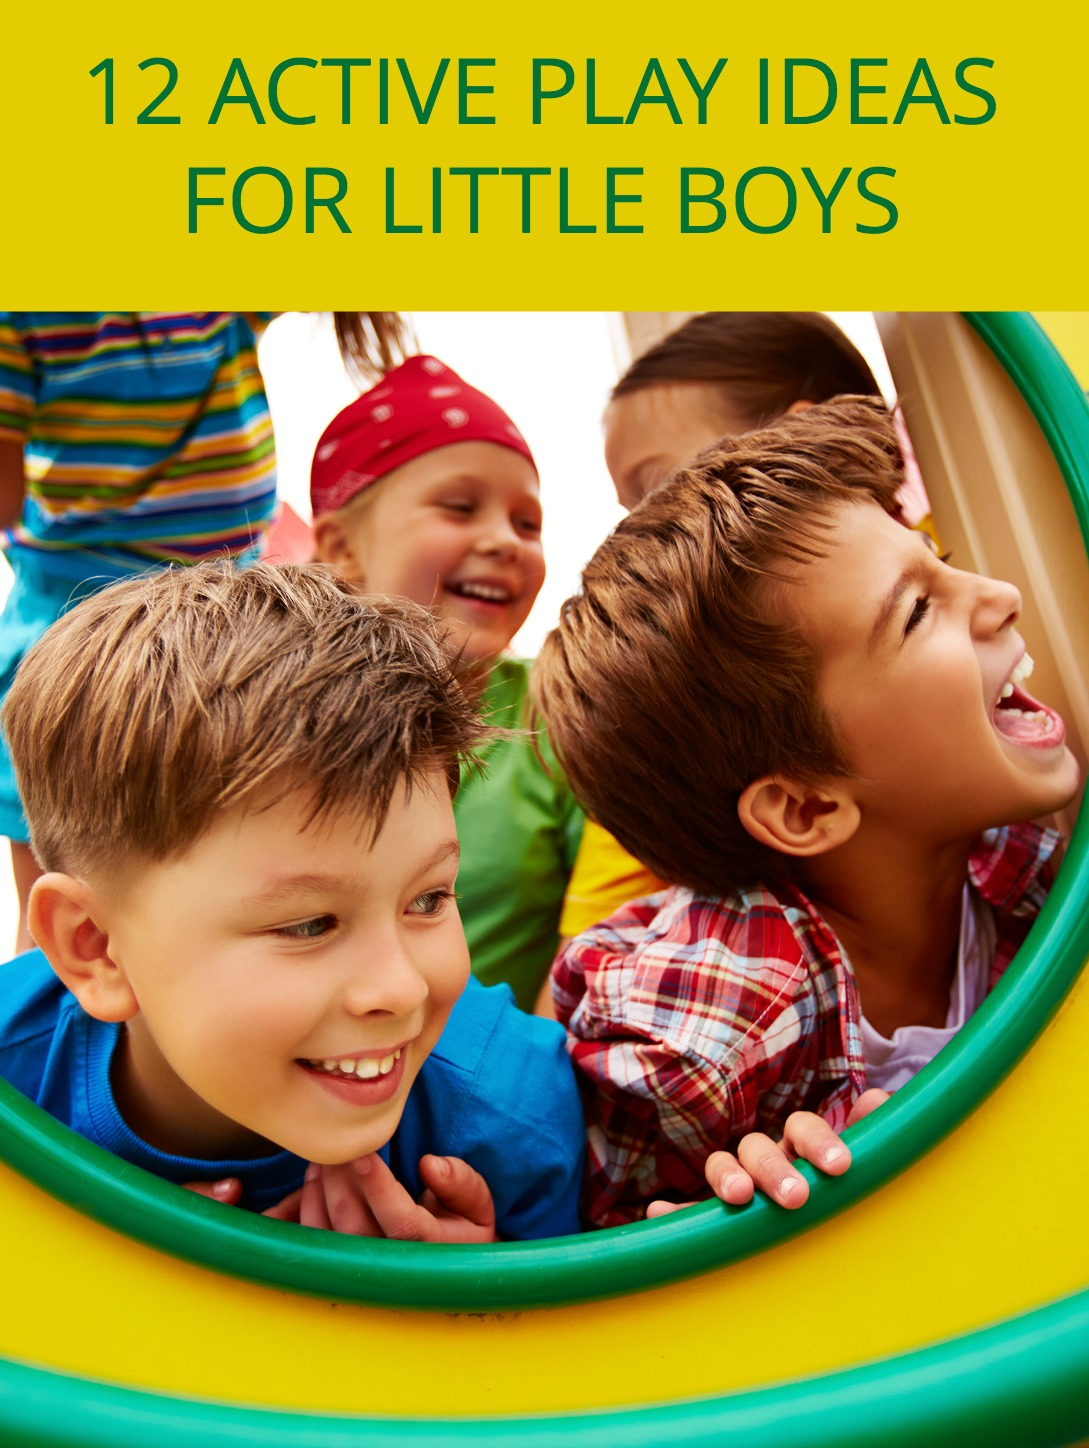 12 Energy Burning Activities For Boys